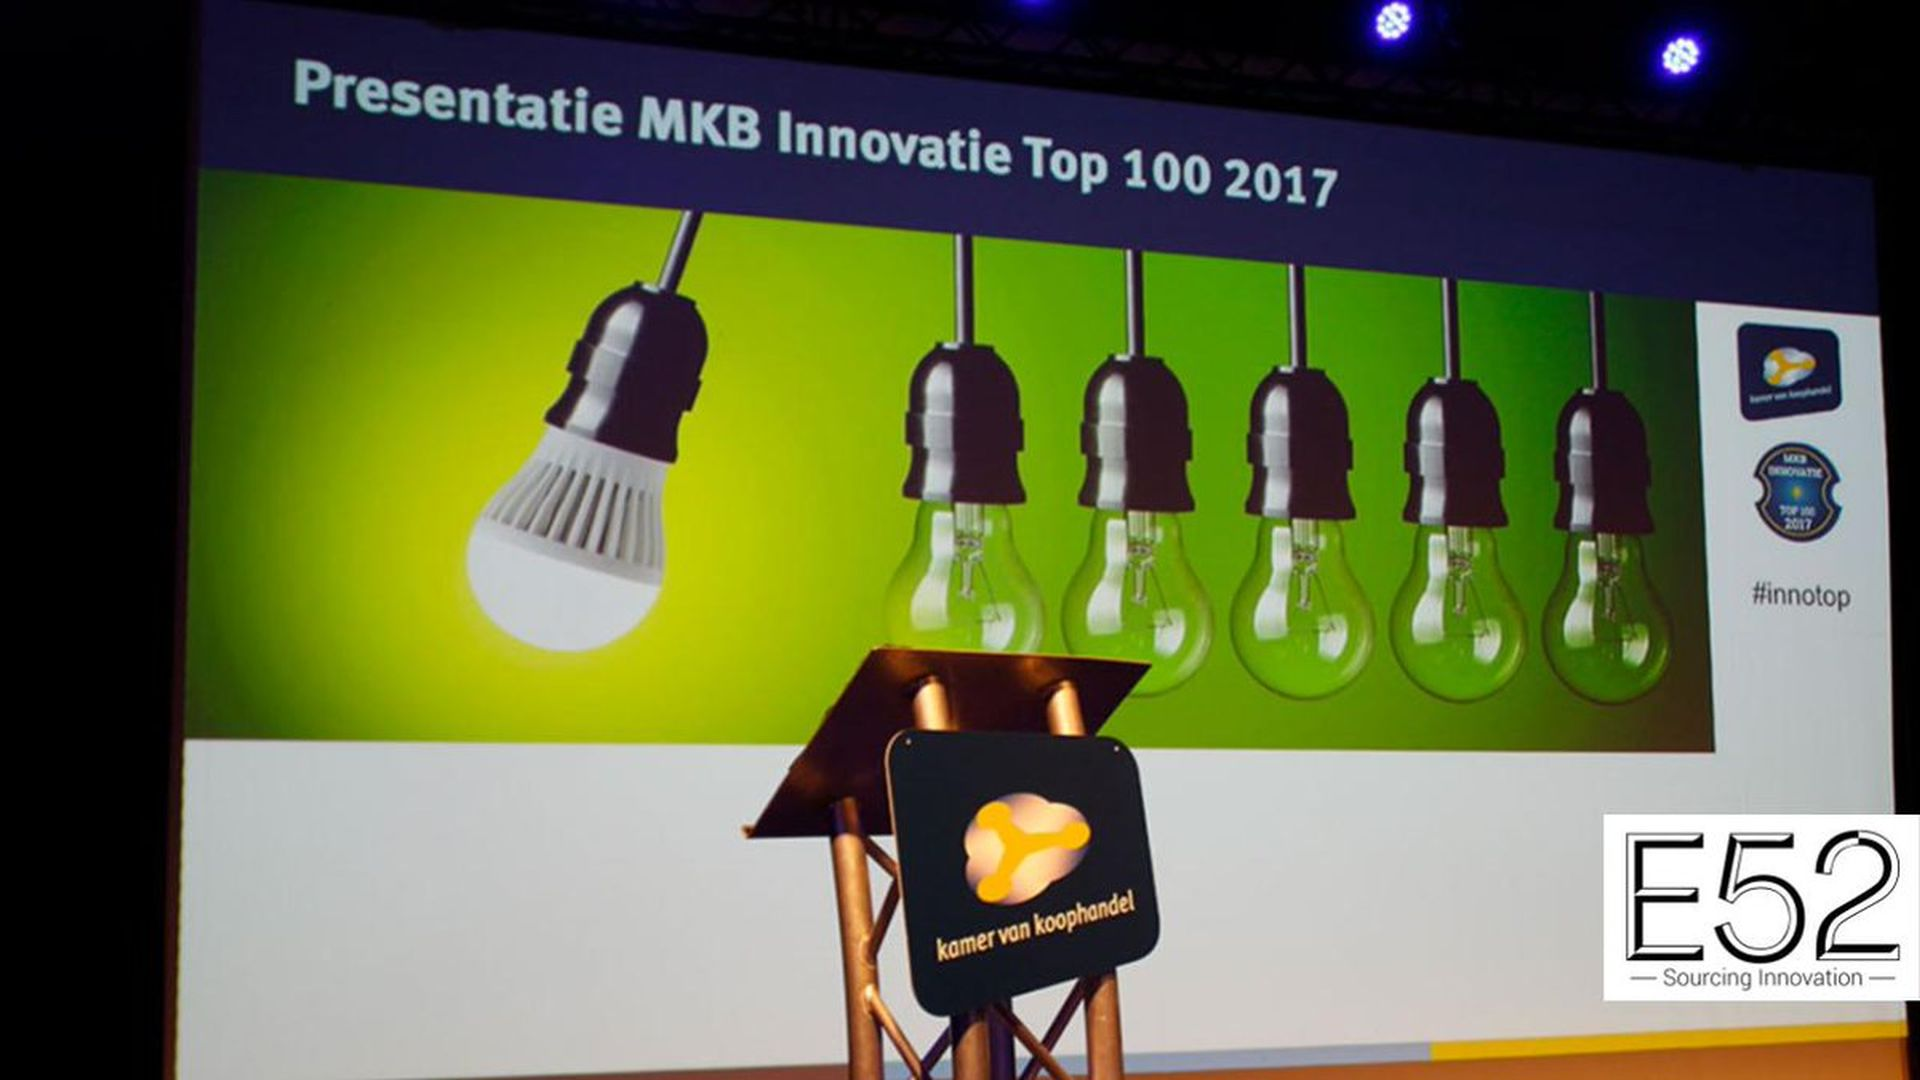 Eindhoven well presented in Innovative SME top100